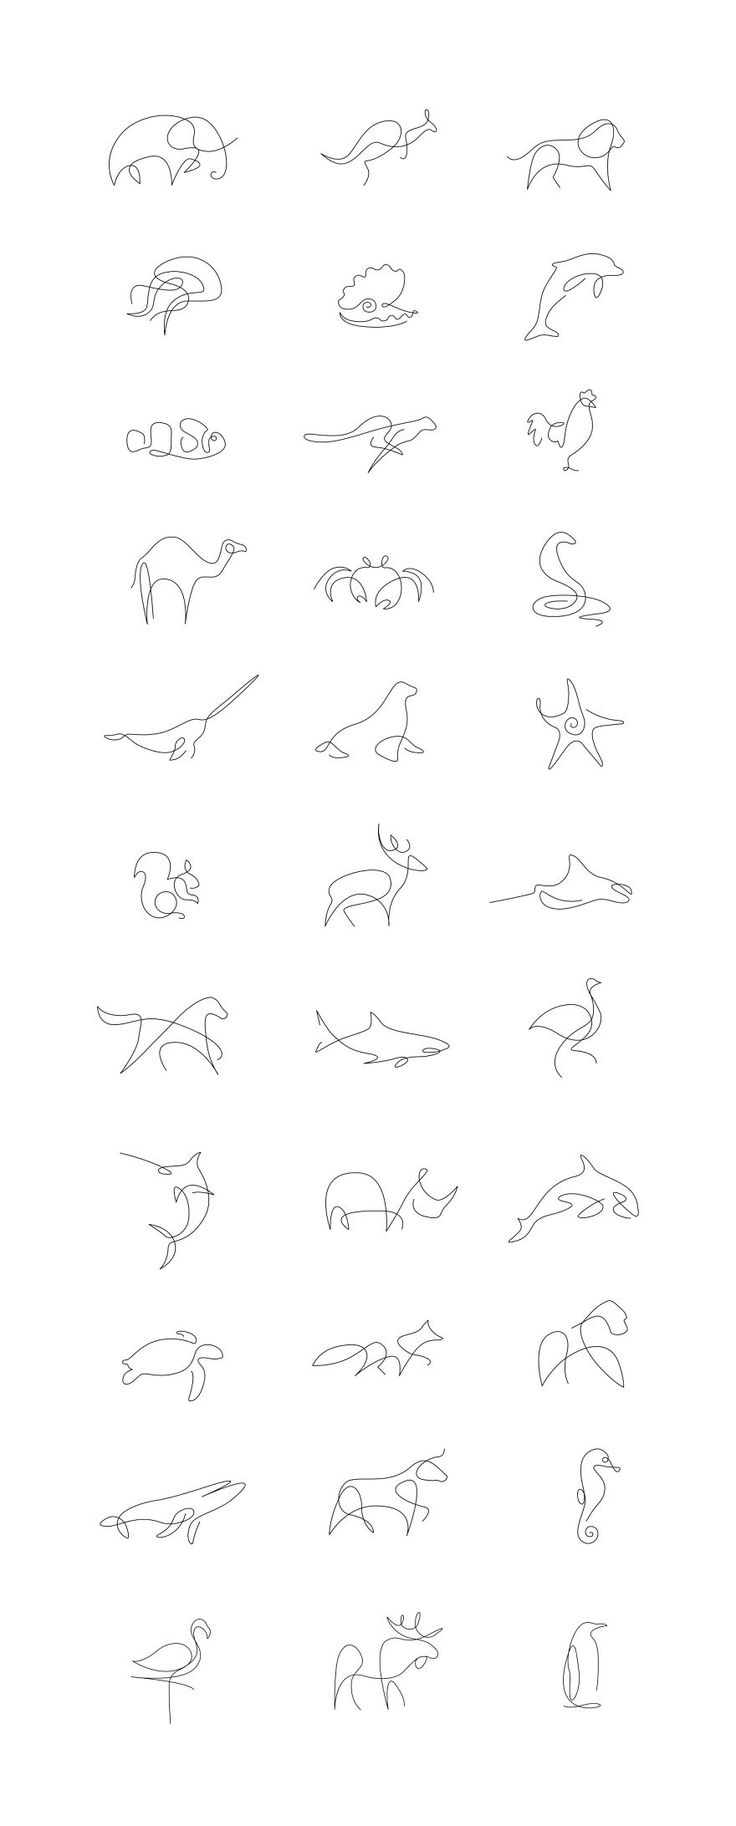 Minimalist One Line Animals By A French Artist Duo | Bored Panda